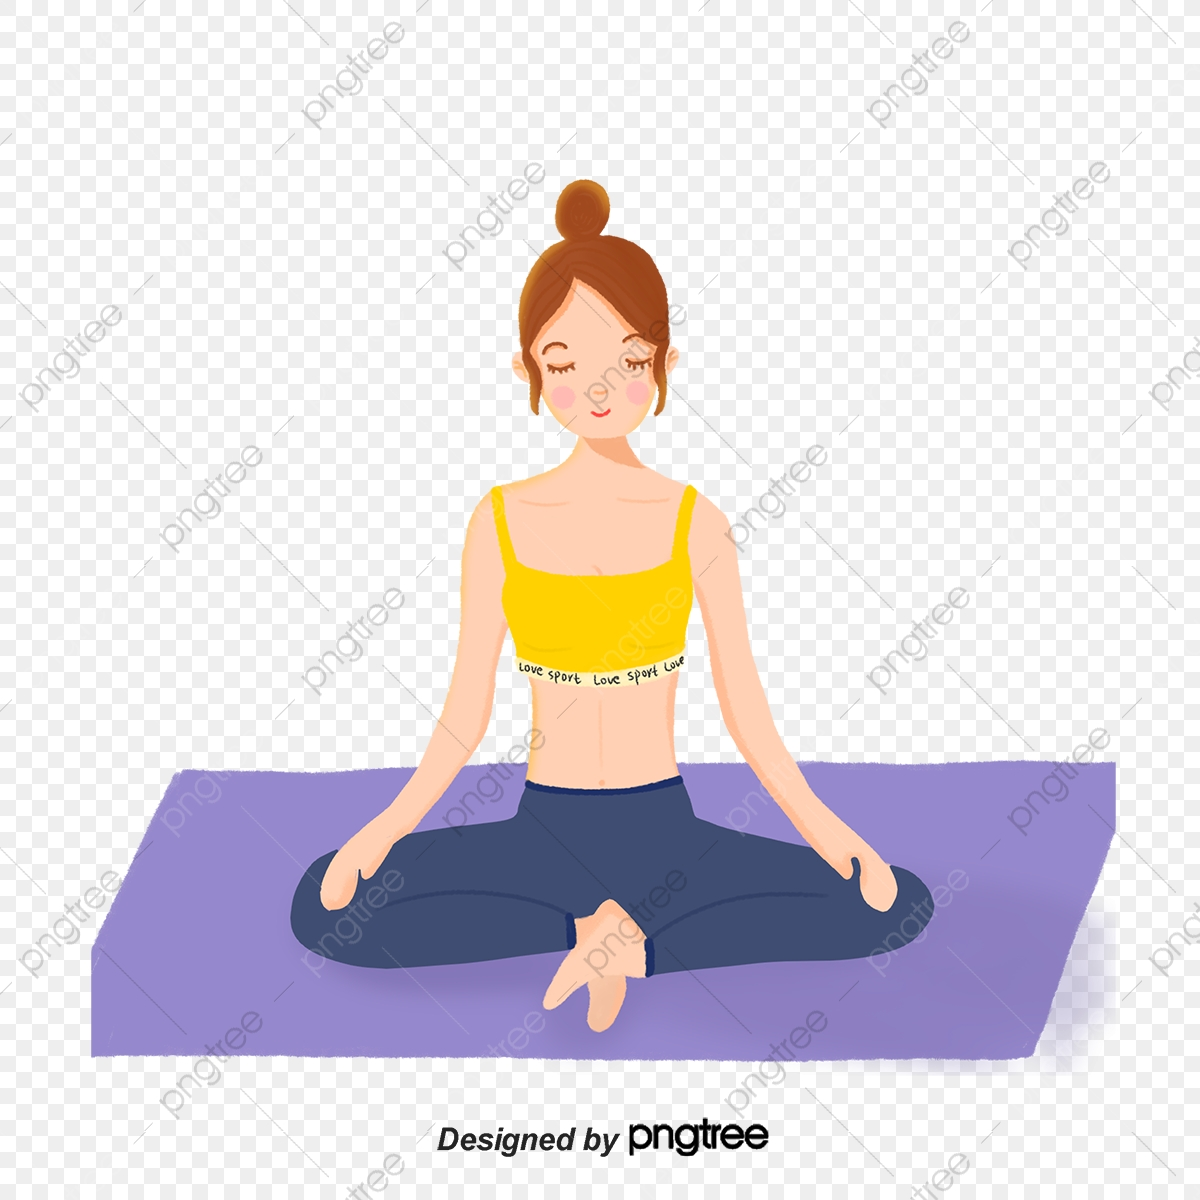 Female Yoga Exercise Yoga Day Female Sit In Meditation Yoga Png Transparent Clipart Image And Psd File For Free Download